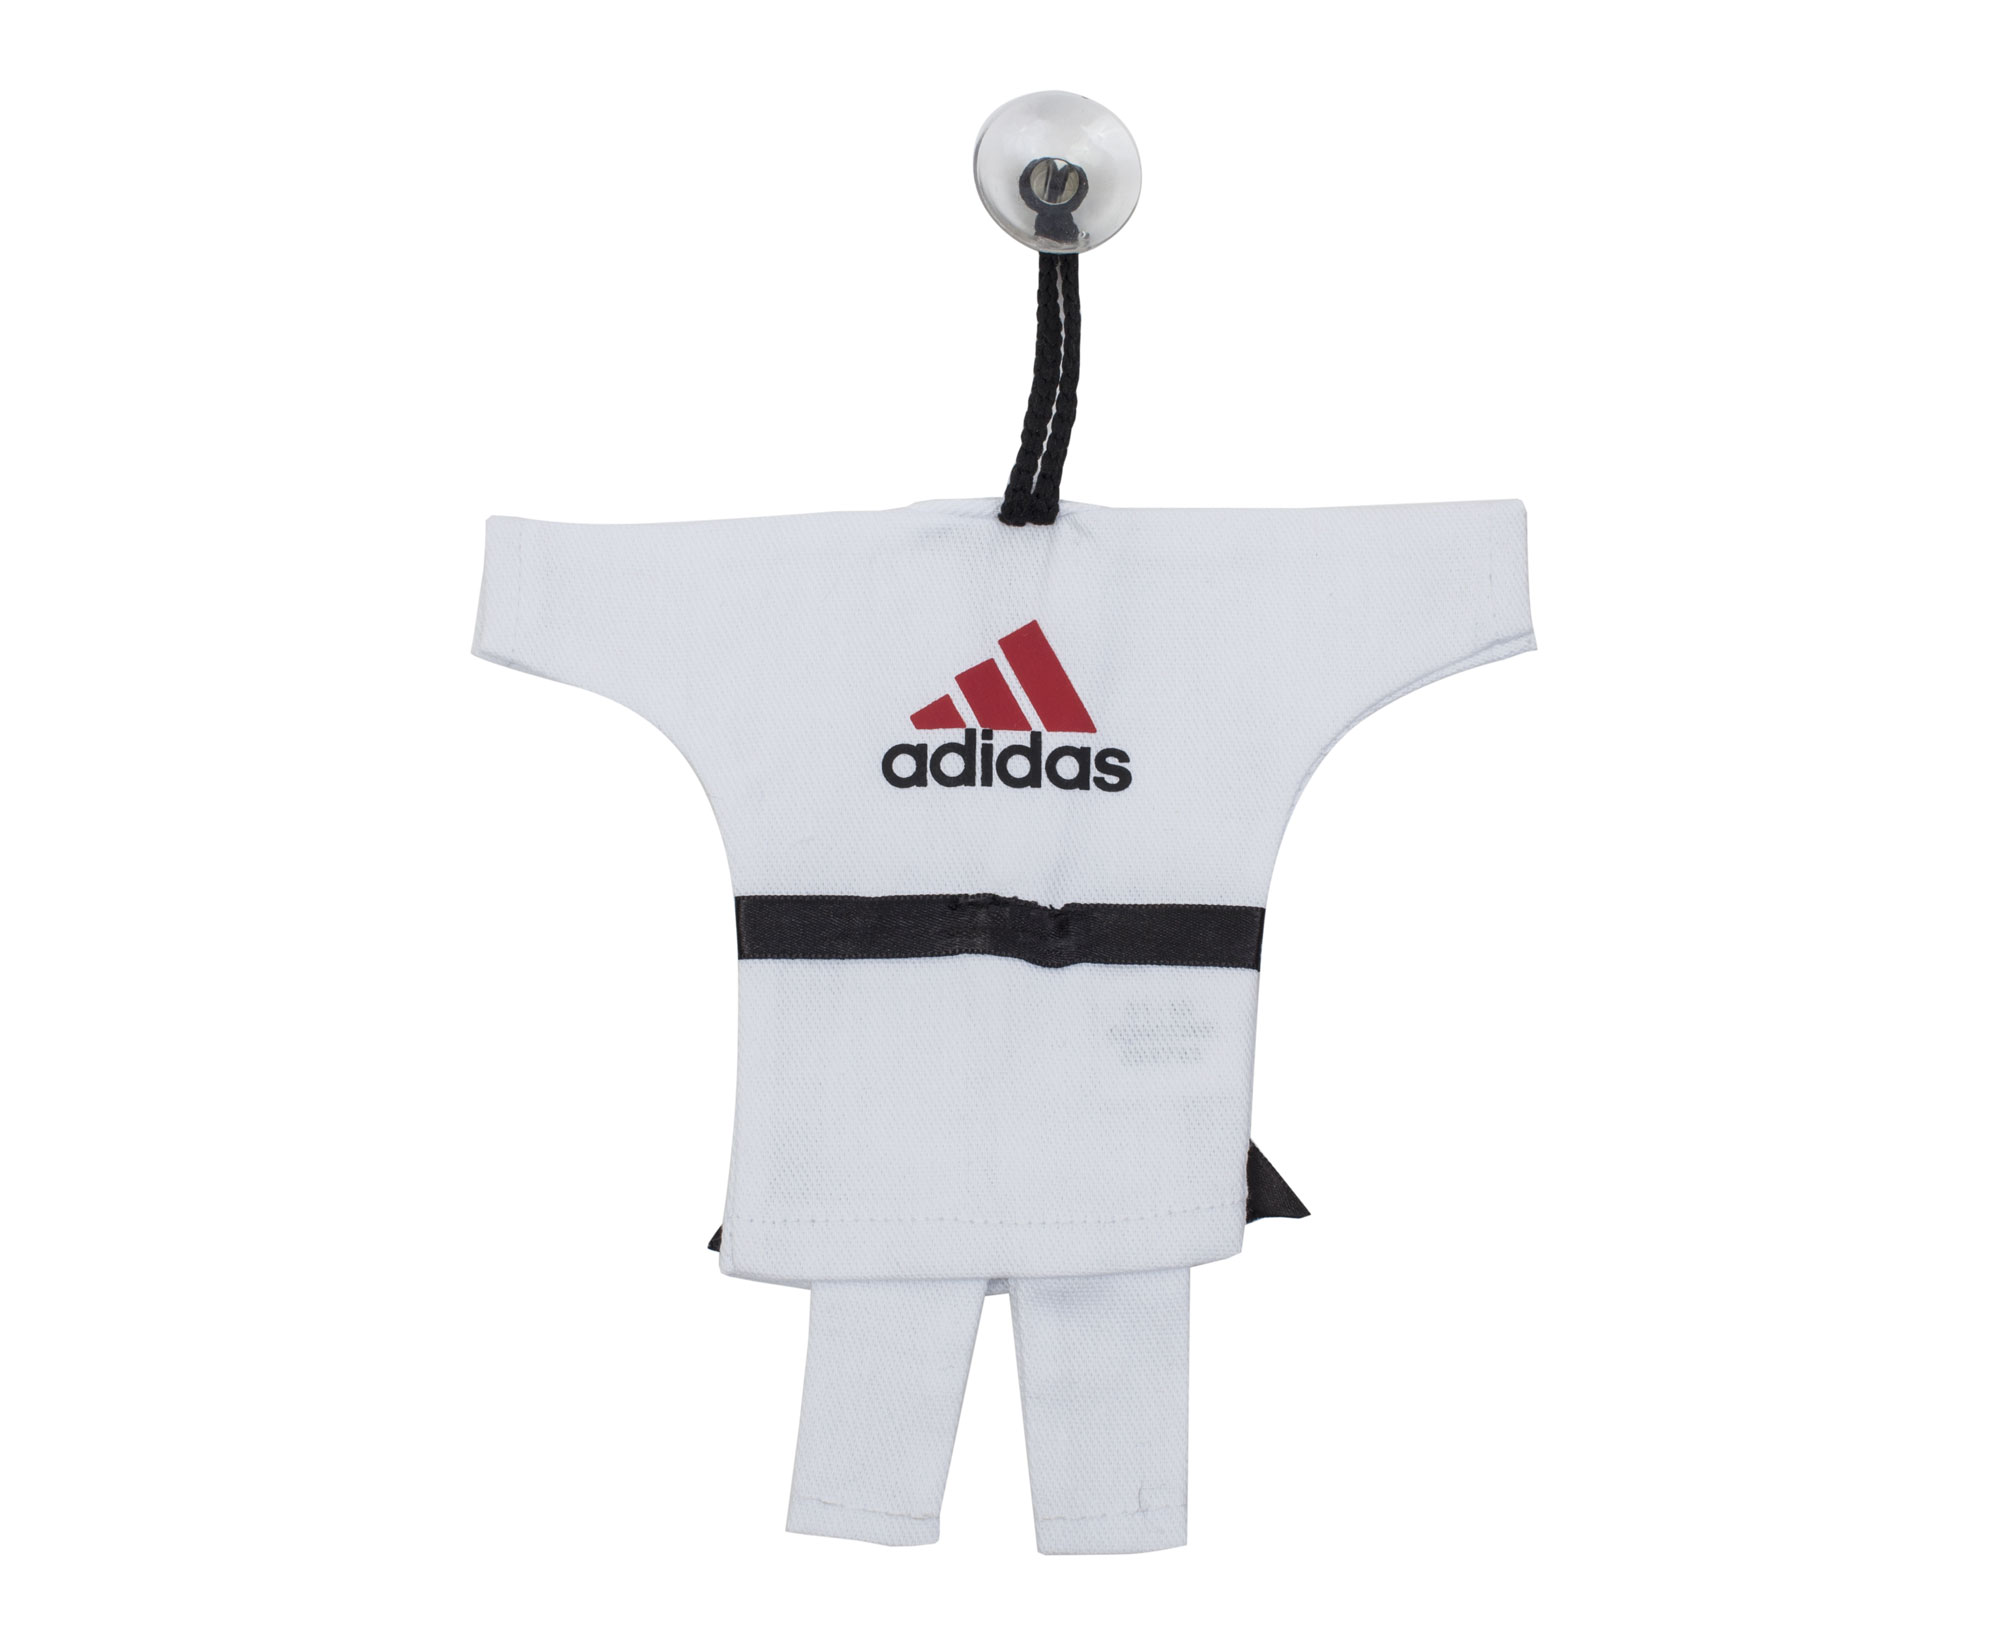 Сувенирное кимоно для карате Mini Karate Uniform белое фото 1